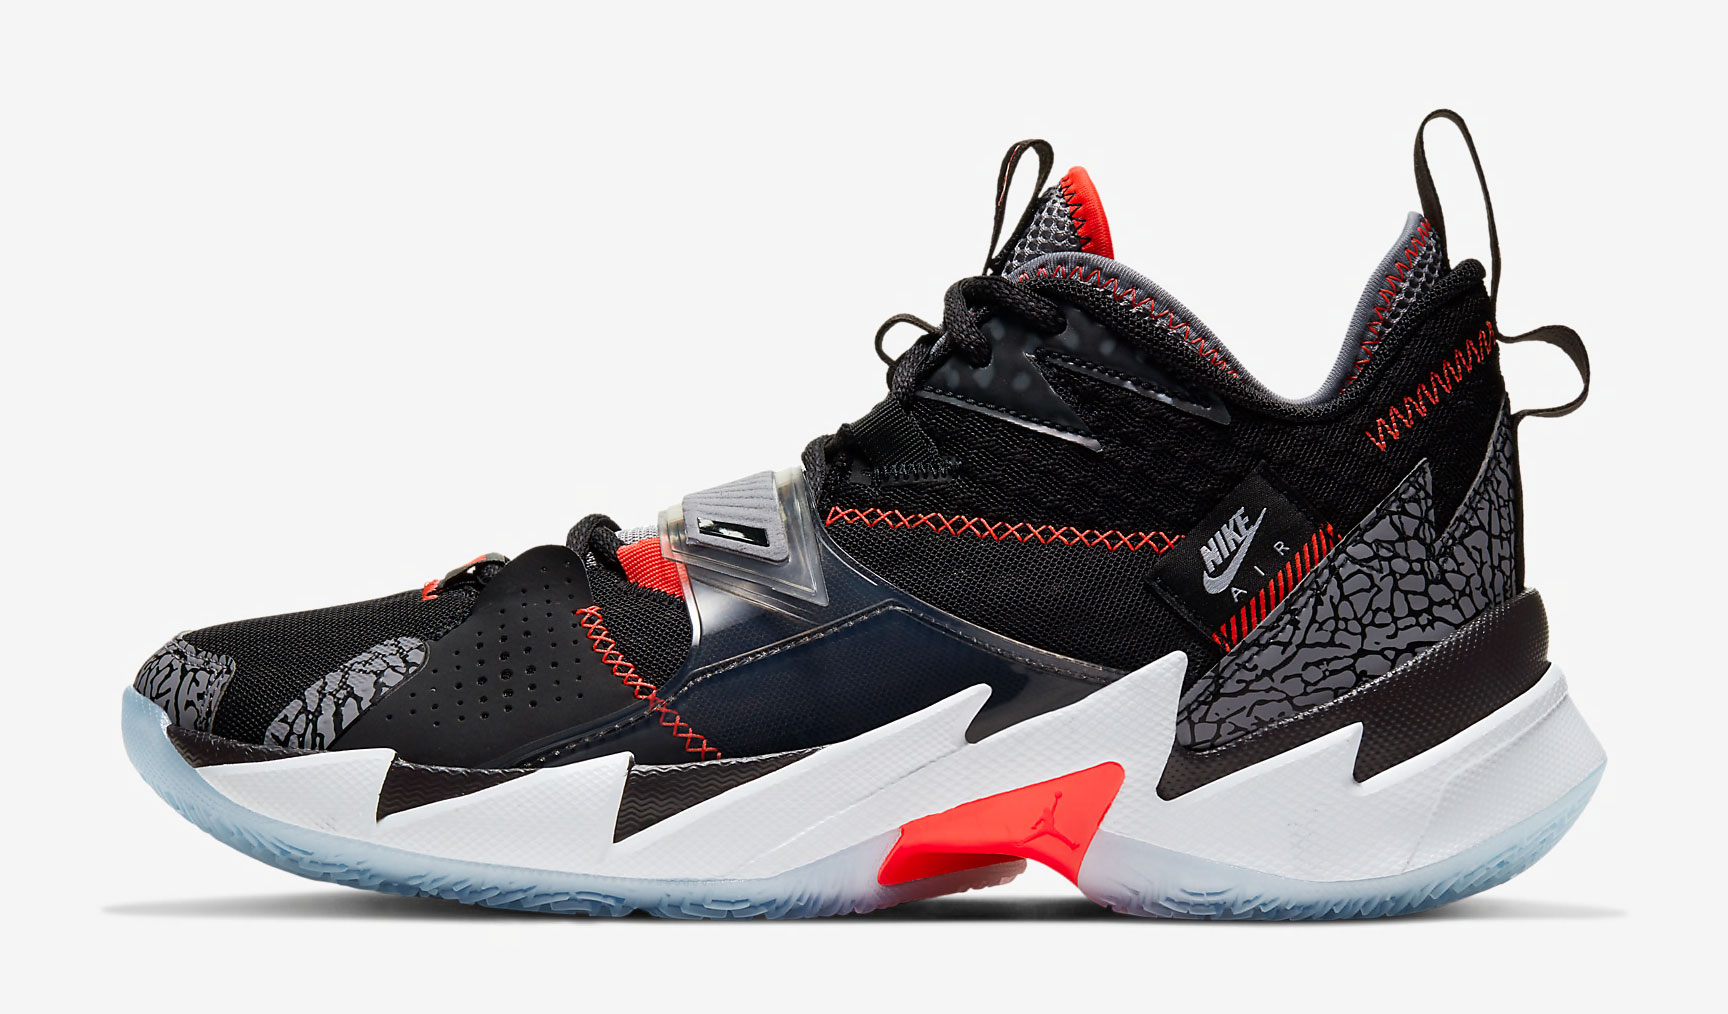 jordan-why-not-zer03-black-cement-release-date